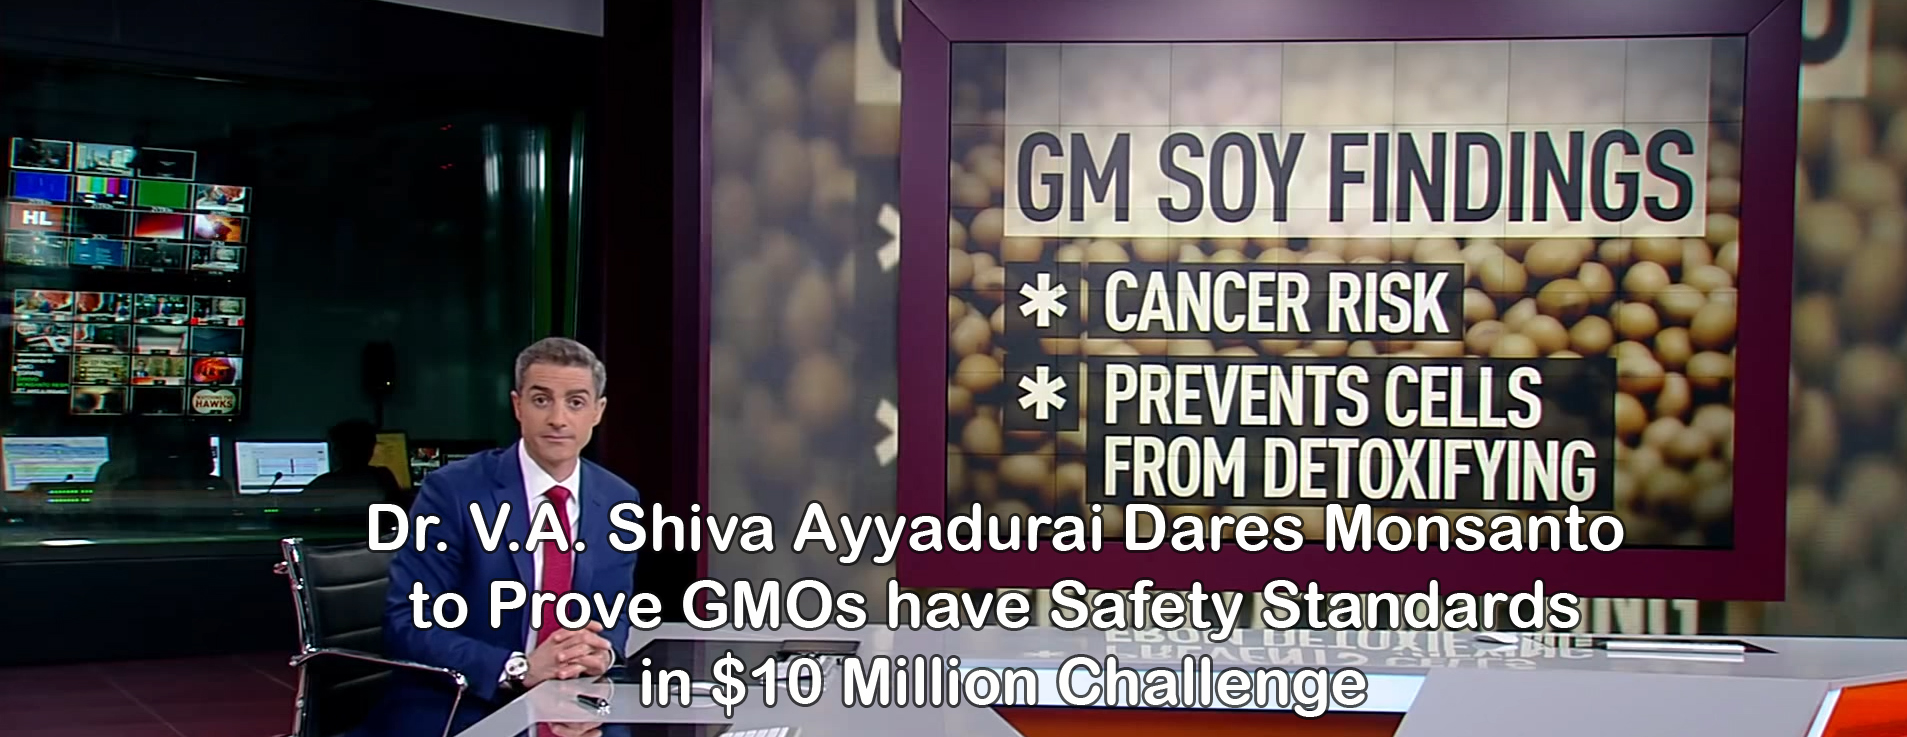 Dr. V.A. Shiva Ayyadurai Dares Monsanto To Prove GMOs Have Safety Standards In $10 Million Challenge